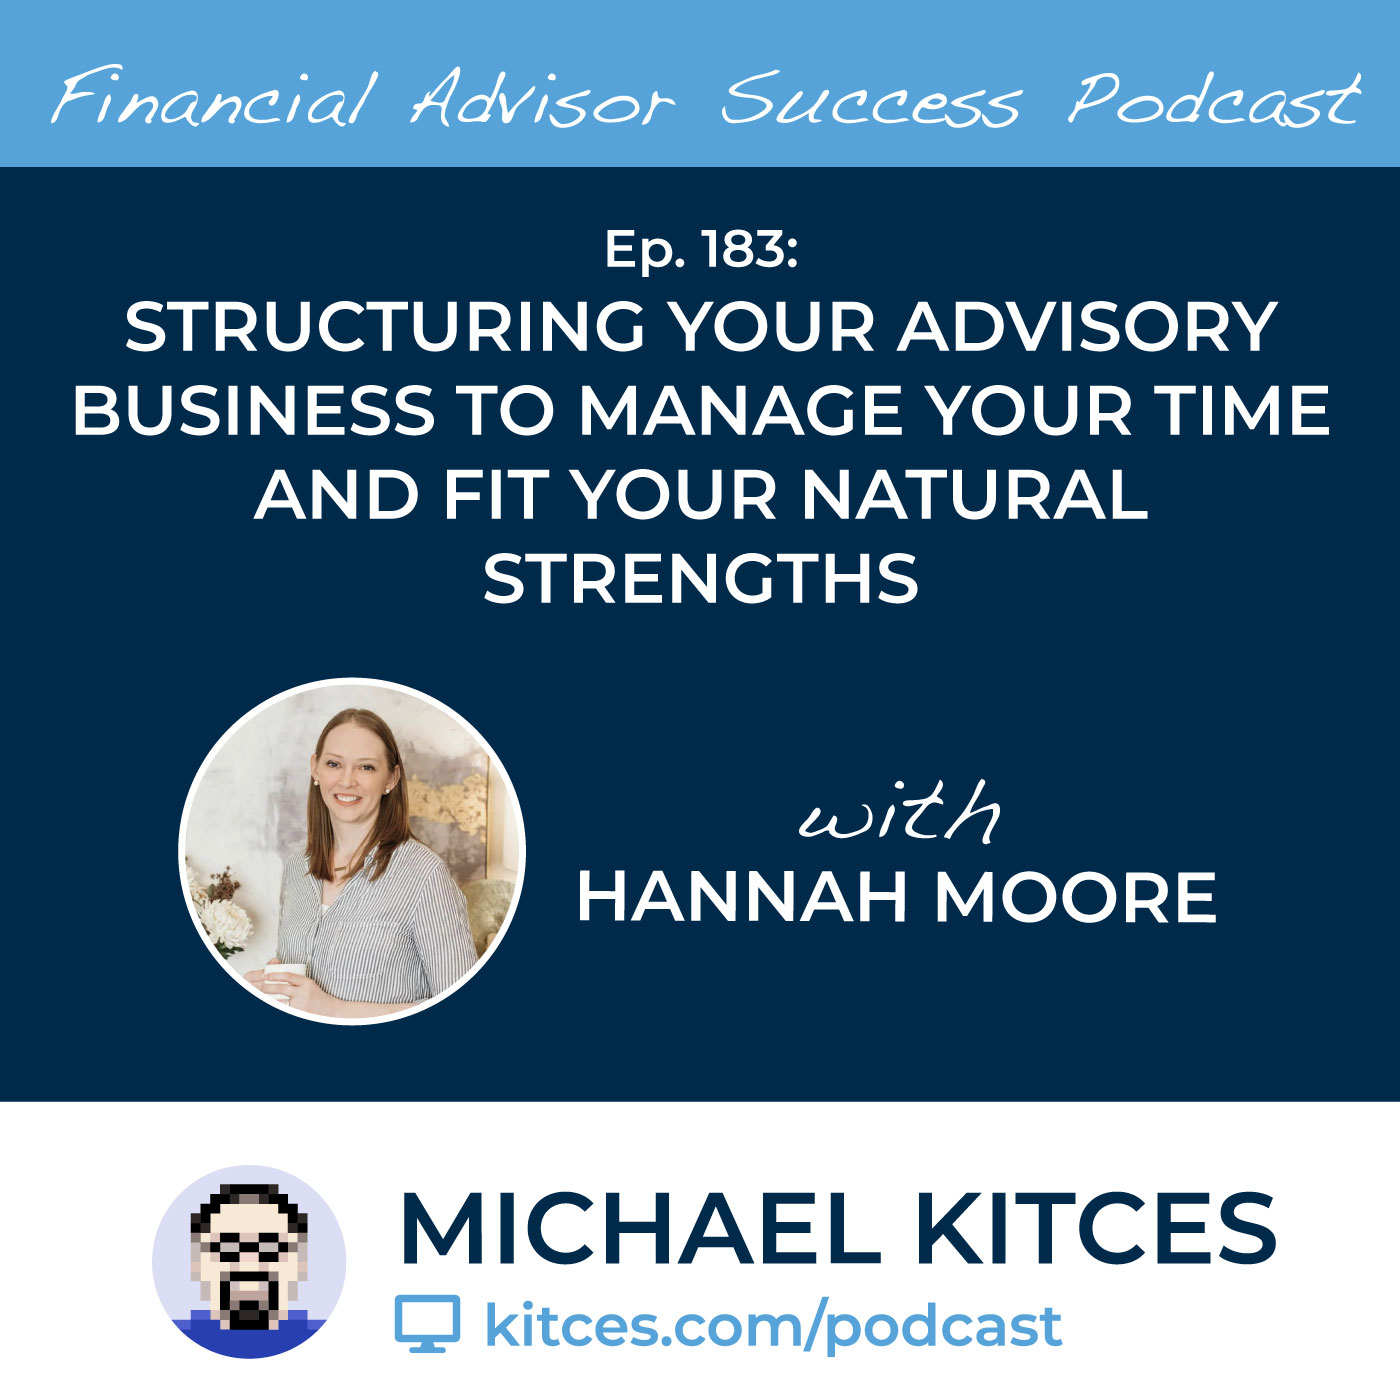 Ep 183: Structuring Your Advisory Business To Manage Your Time And Fit Your Natural Strengths with Hannah Moore